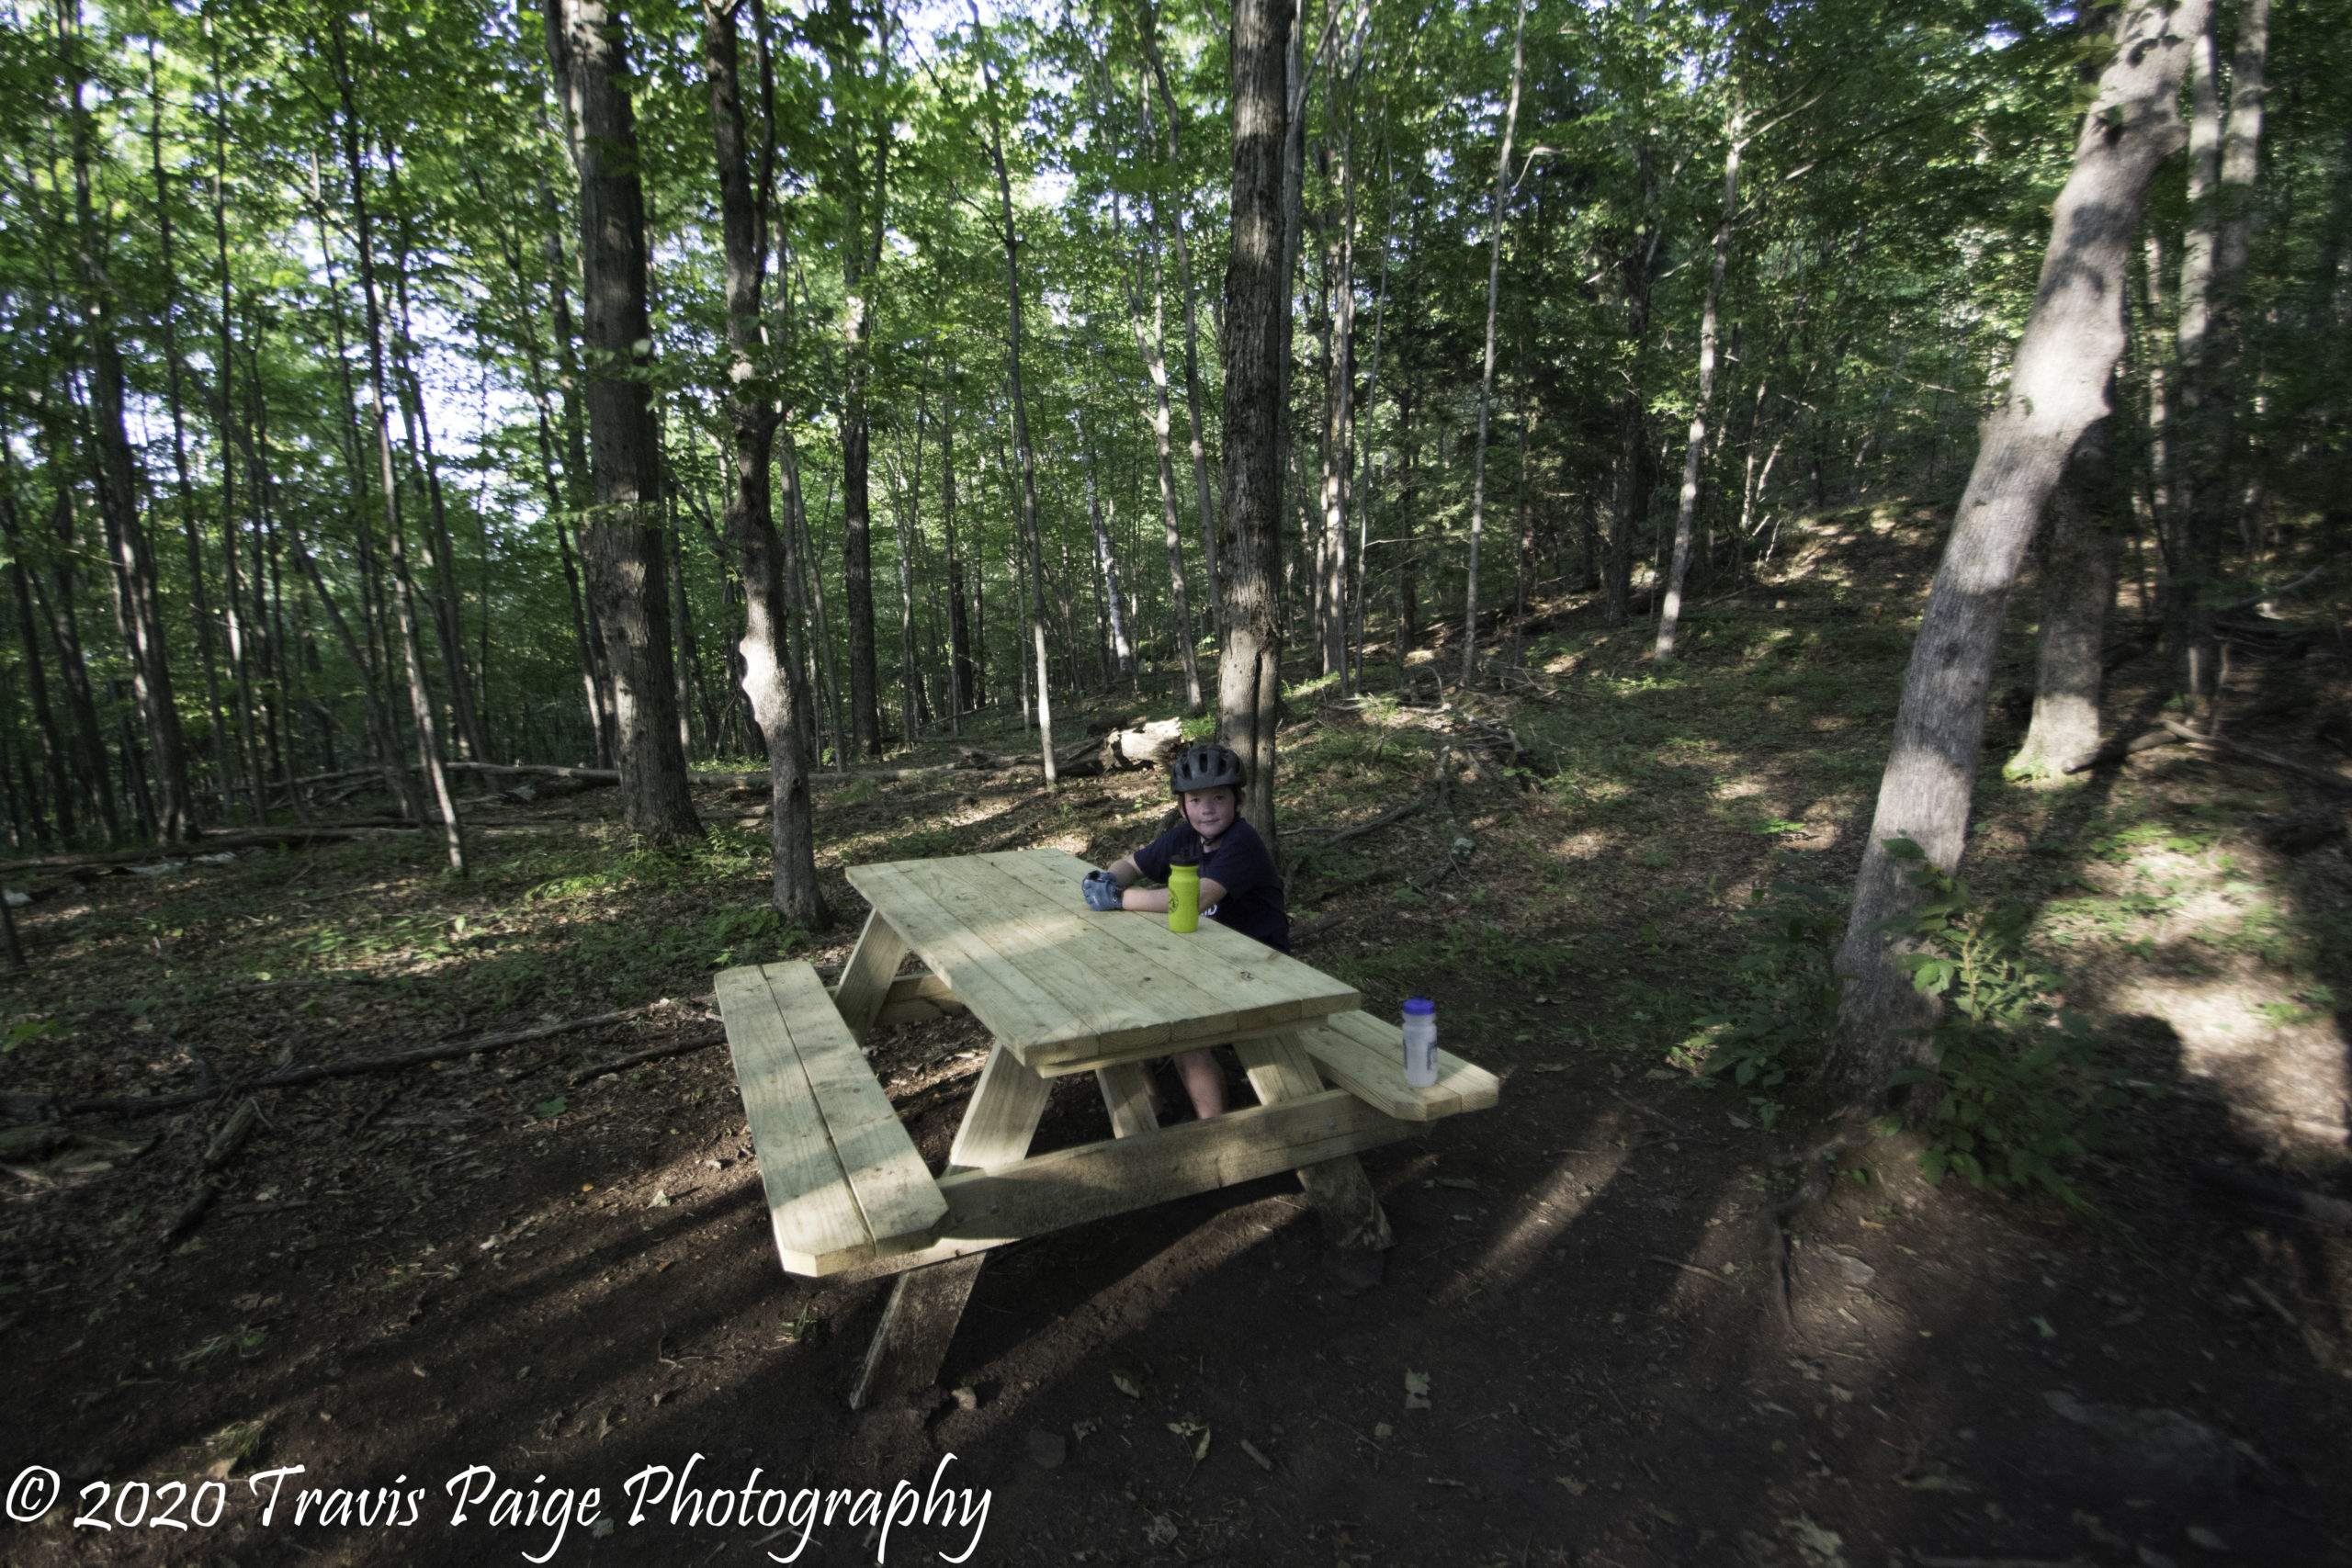 Taking a Break at the Ascutney Trails